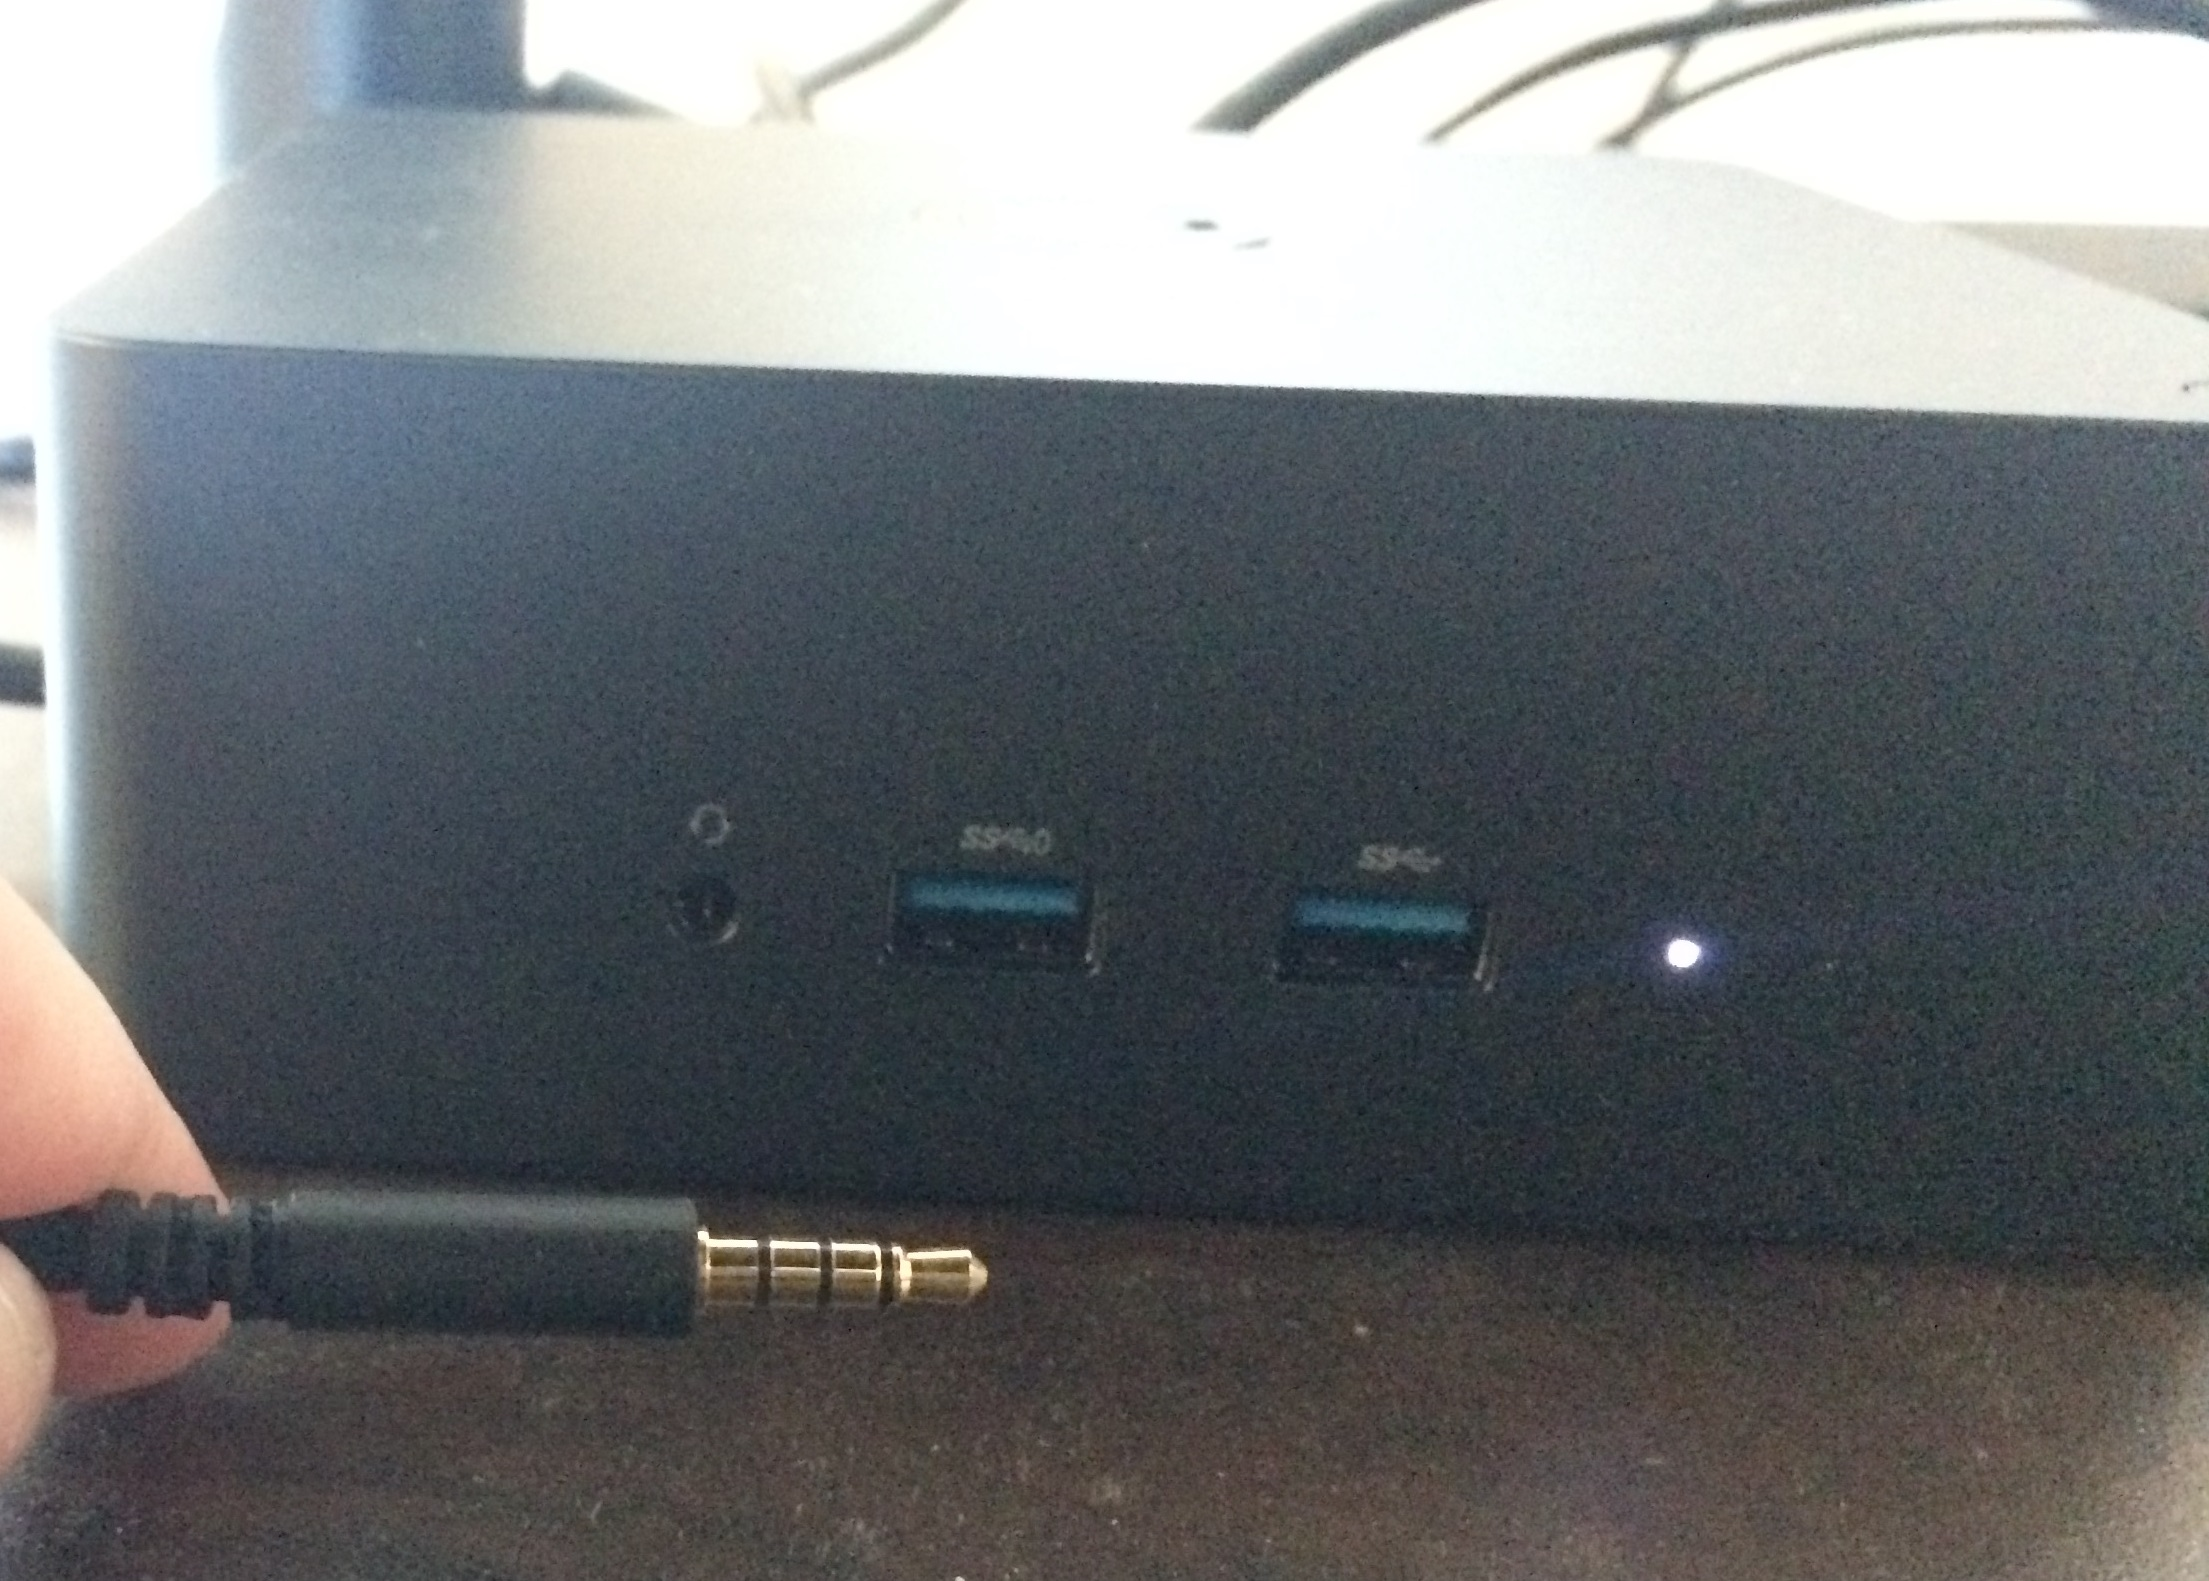 Not Rocket Science » Dell TB16 Thunderbolt Dock